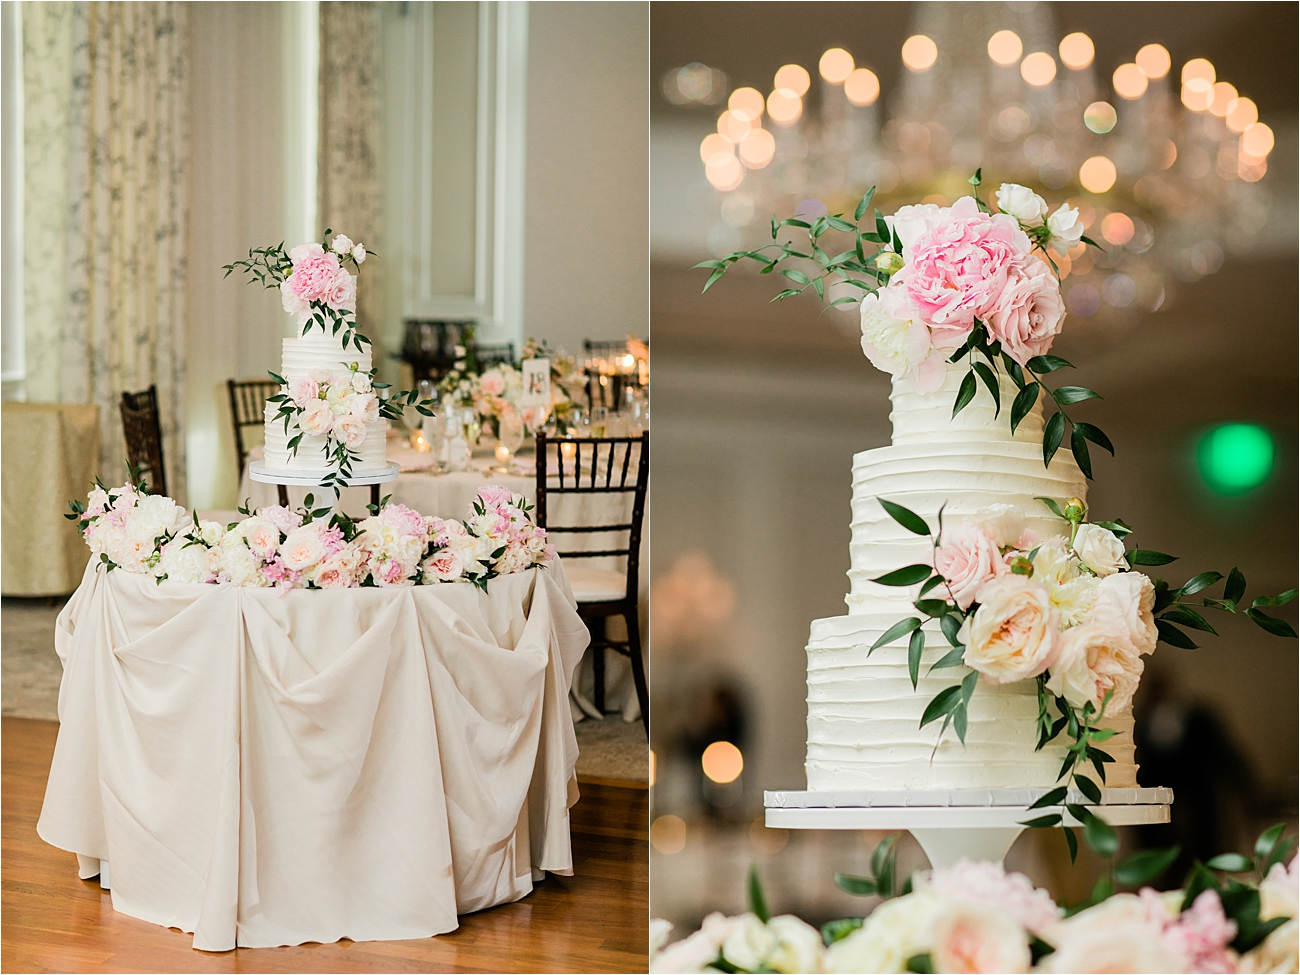 Photo of wedding cake at Columbia country club wedding reception